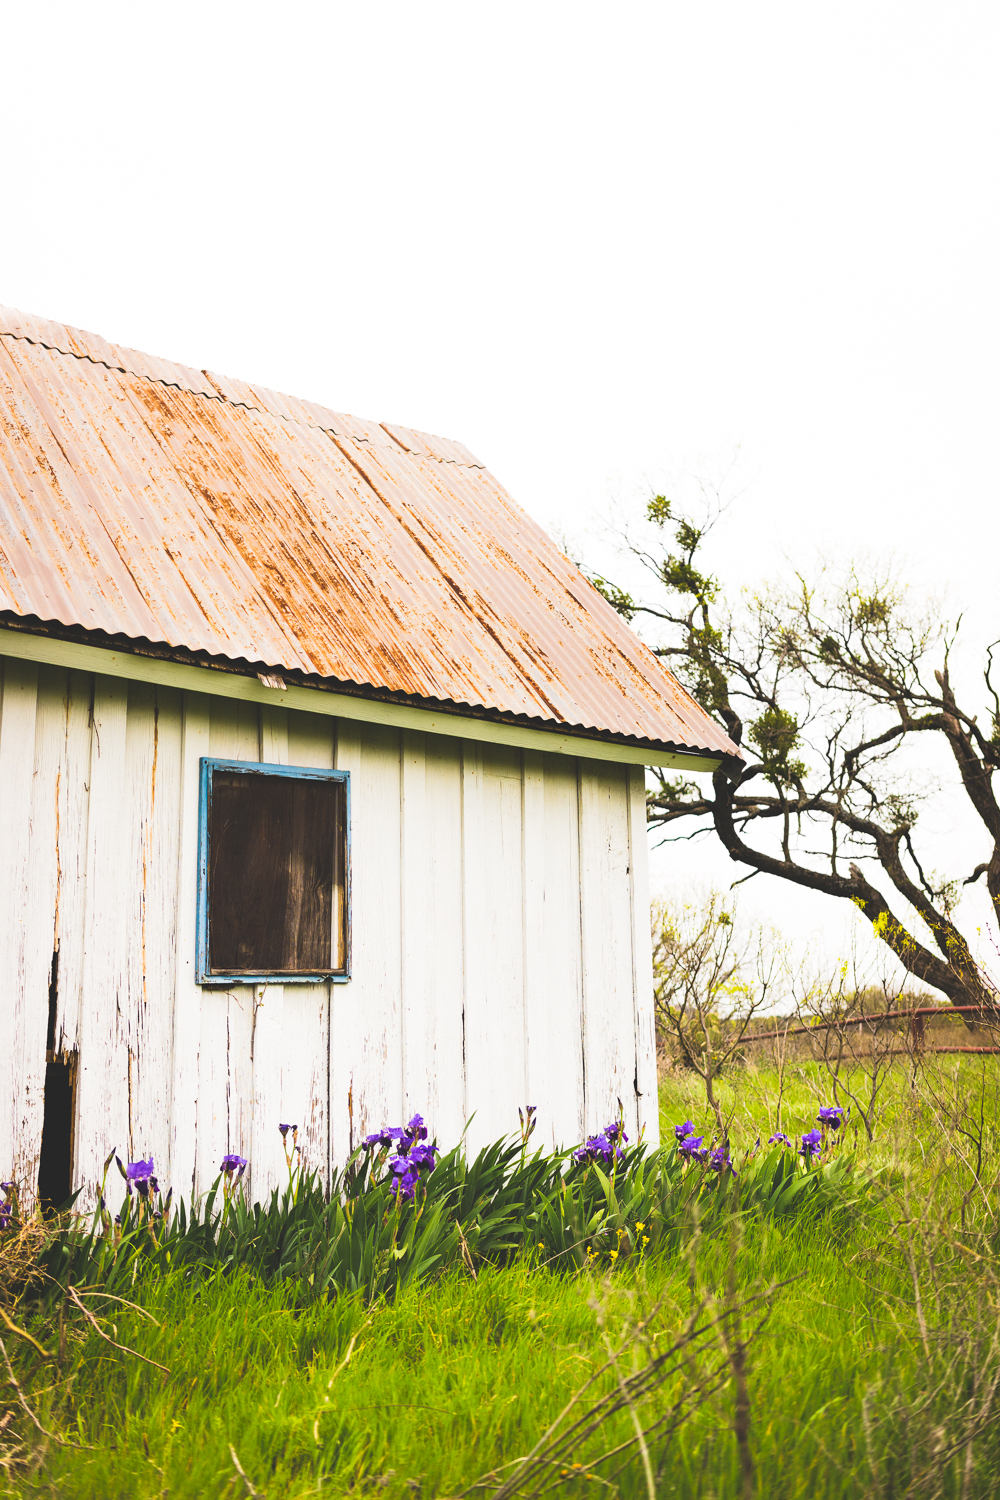 The shed along the side of the ranch house had the Texas state wildflower growing next to it!